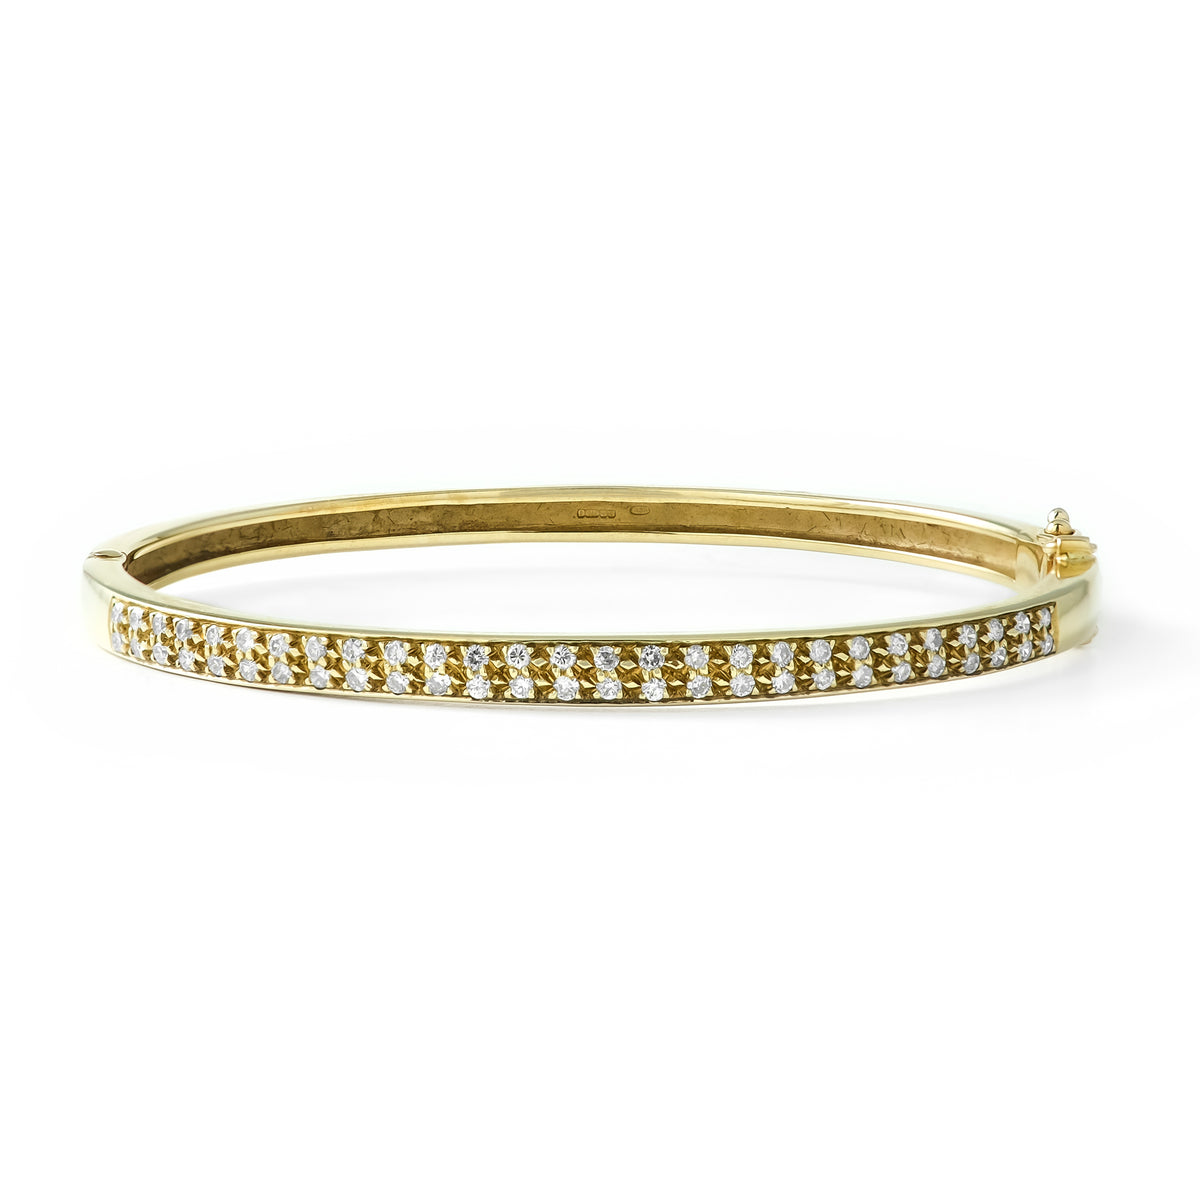 Vintage 9ct Yellow Gold Two Row Diamond Bangle